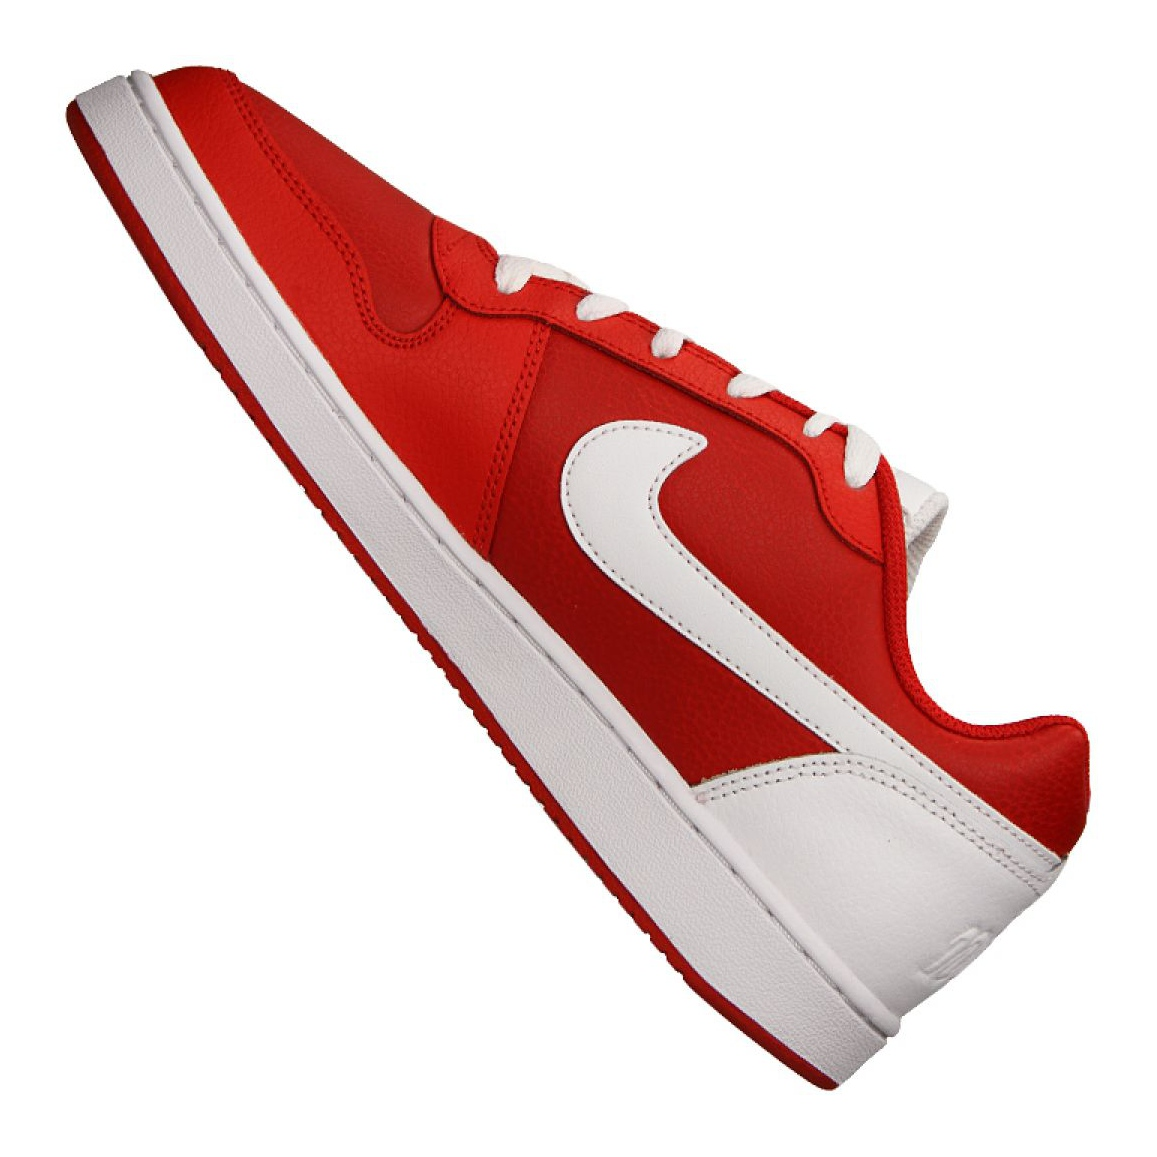 Nike Ebernon Low M AQ1775-600 shoes red